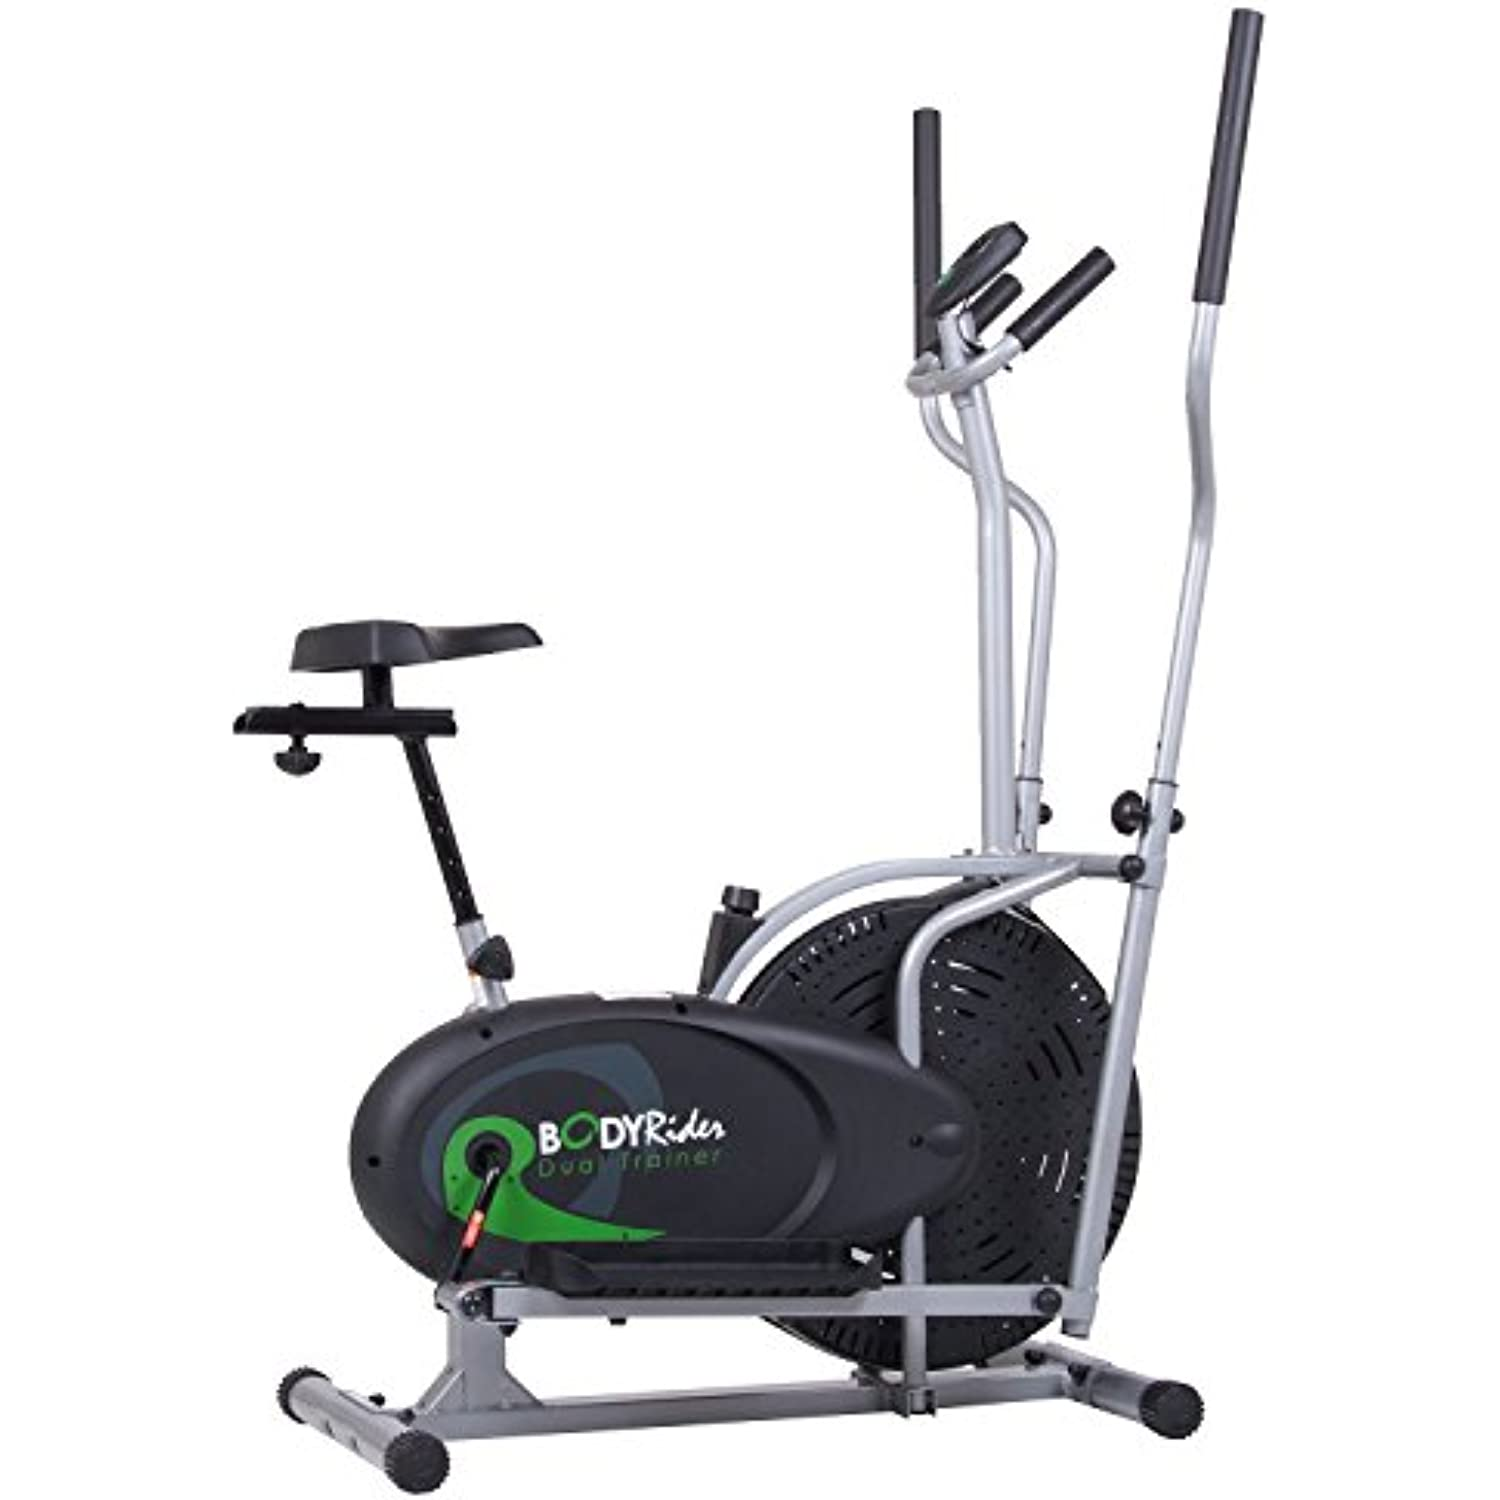 Body Rider Elliptical Trainer and Exercise Bike with Seat and Easy Computer / Dual Trainer 2 in 1 Cardio Home Office Fitness Workout Machine BRD2000